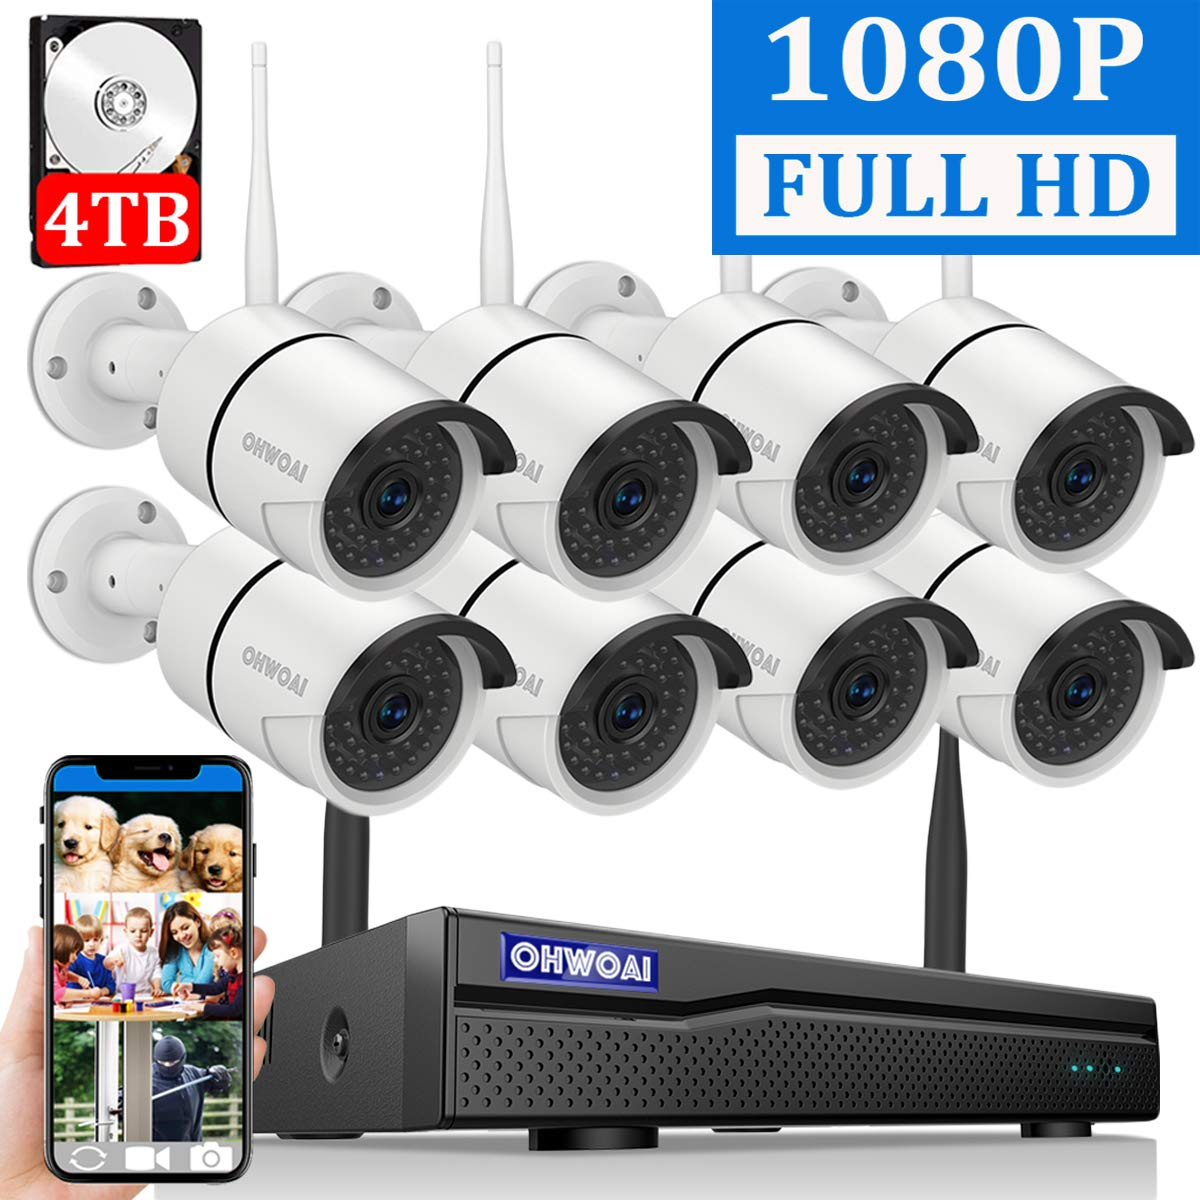 【2019 New】 Security Camera System Wireless, 4TB Hard Drive Pre-Install 8 Channel 1080P NVR, 8PCS 1080P 2.0MP CCTV WI-FI IP Cameras for Homes,OHWOAI HD Surveillance Video Security System.